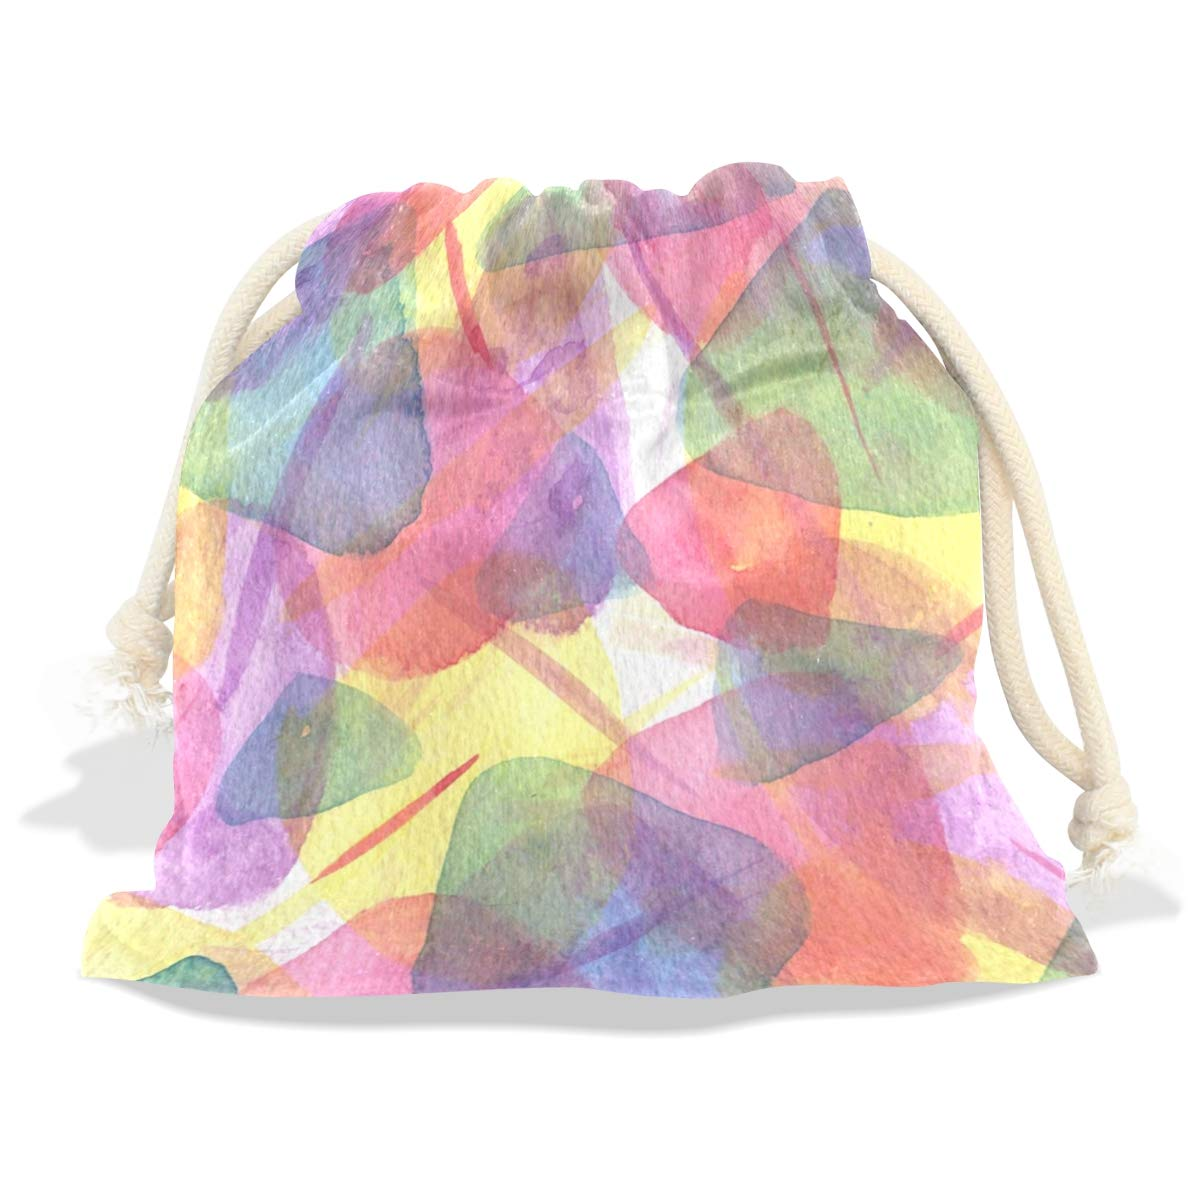 Amazon.com: Watercolor Texture ArtworkGift Bag with Drawstring ...